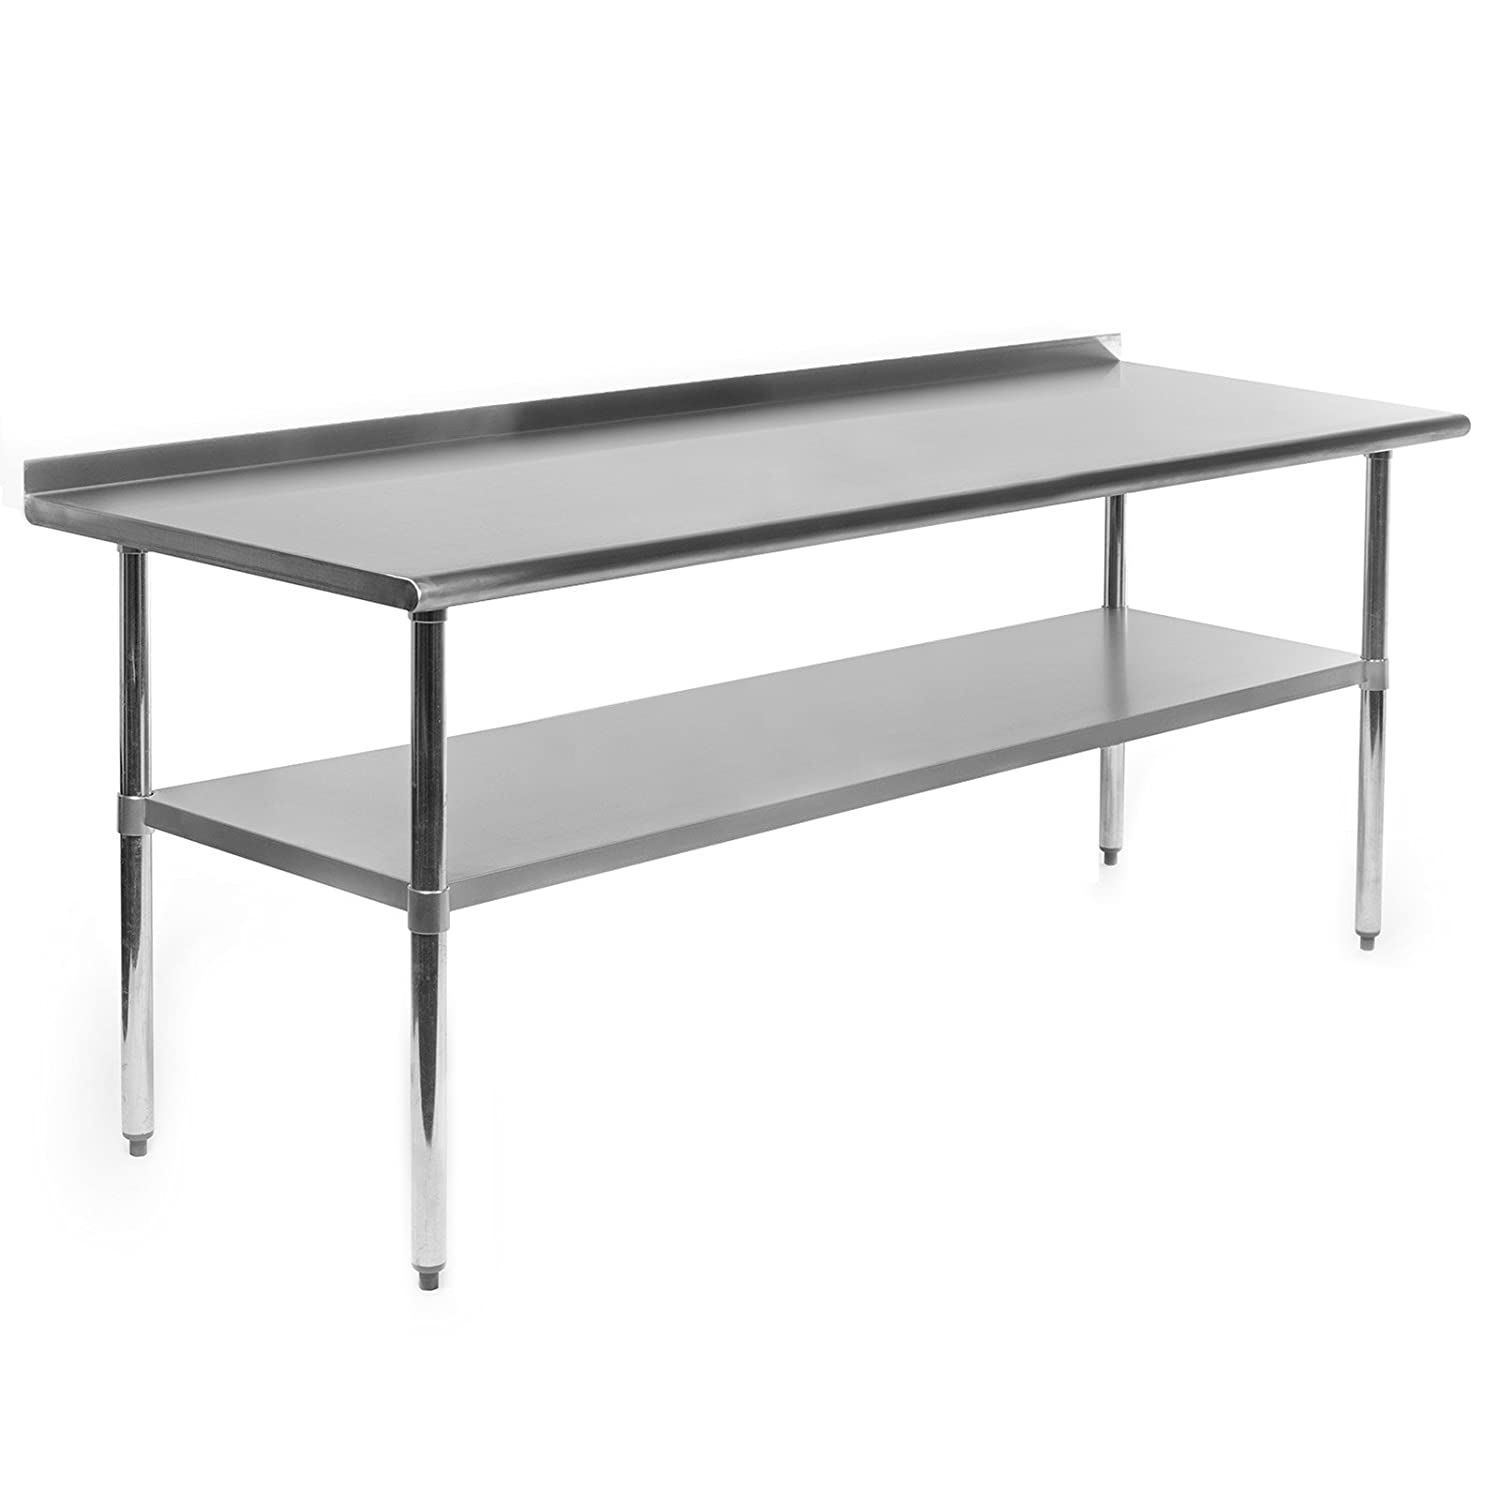 Genial Gridmann NSF Stainless Steel Commercial Kitchen Prep U0026 Work Table W/  Backsplash   72 In